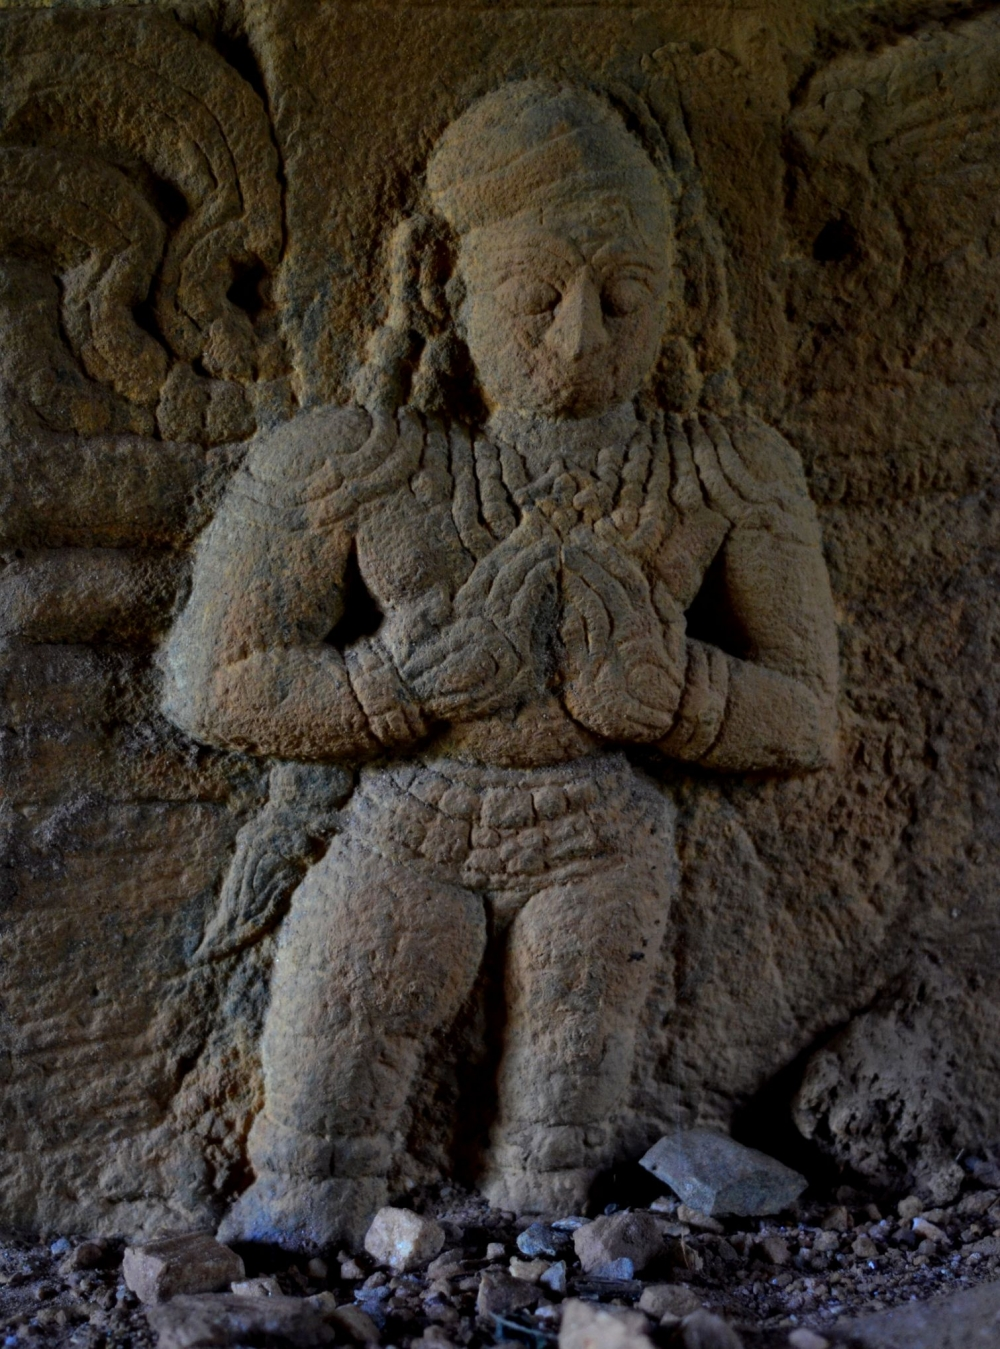 Sculpture from the Jain temple at Puthangadi. It represents a devotee in anjali mudra, considered a gesture of salutation or devotion. This is common sculptural theme in temples, irrespective of creed. Photo courtesy: Rajesh Karthy